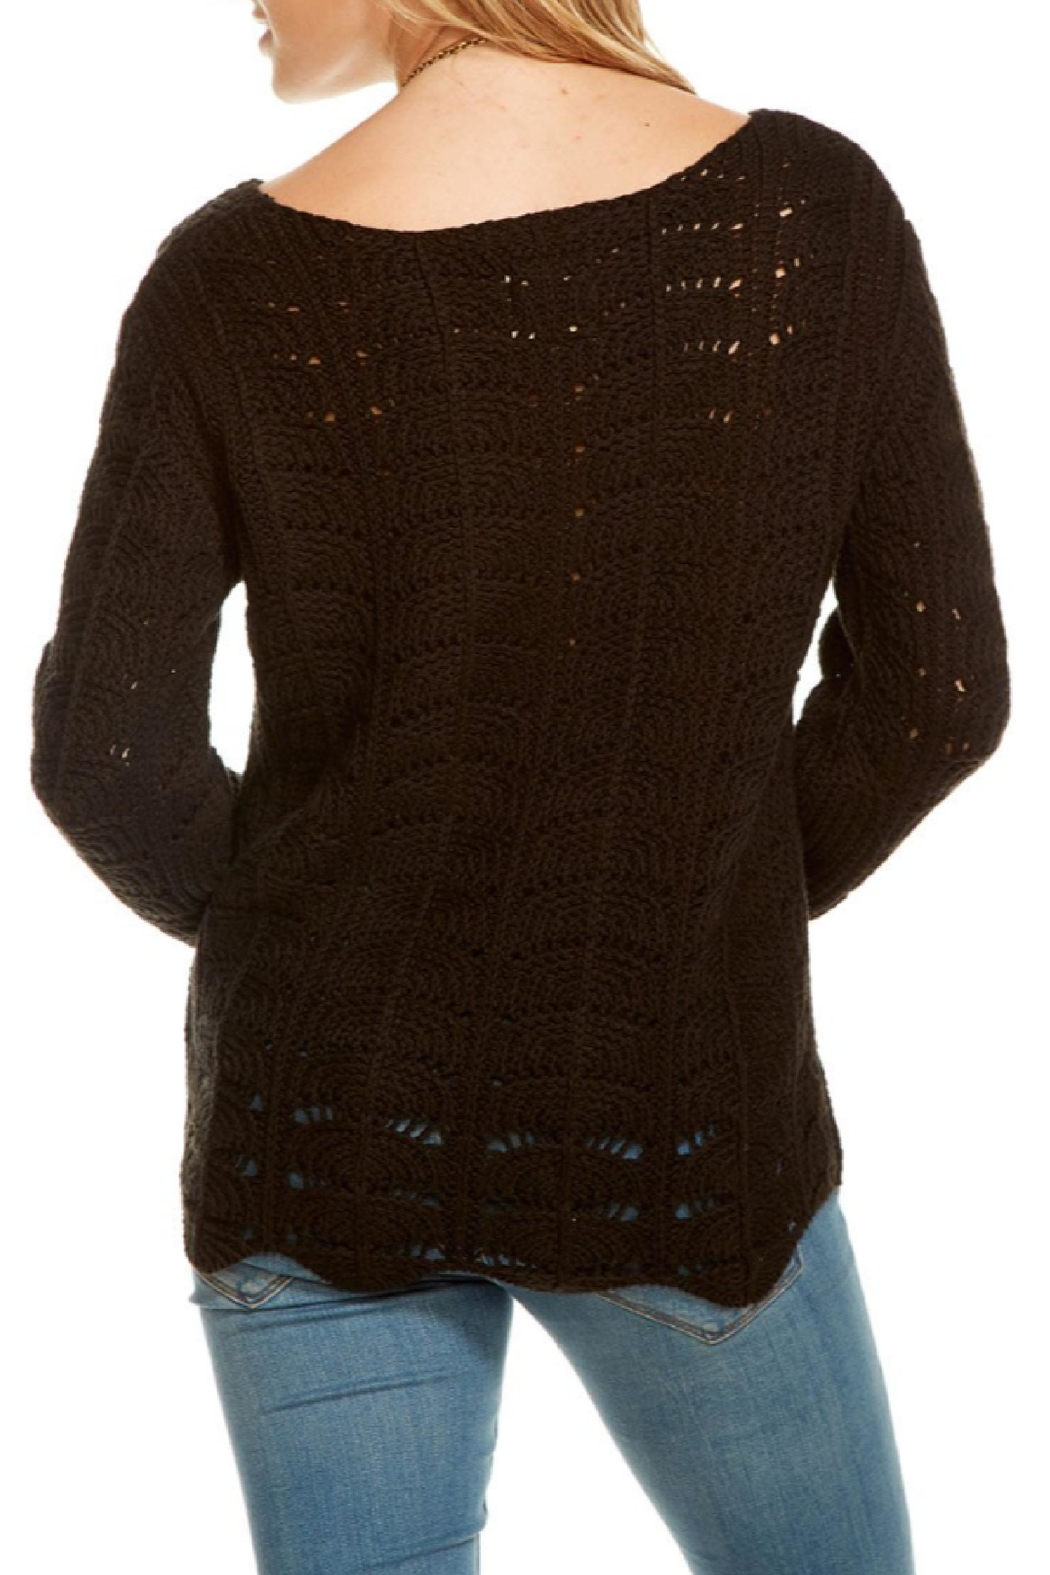 Chaser Crochet Scallop Sweater - Front Full Image